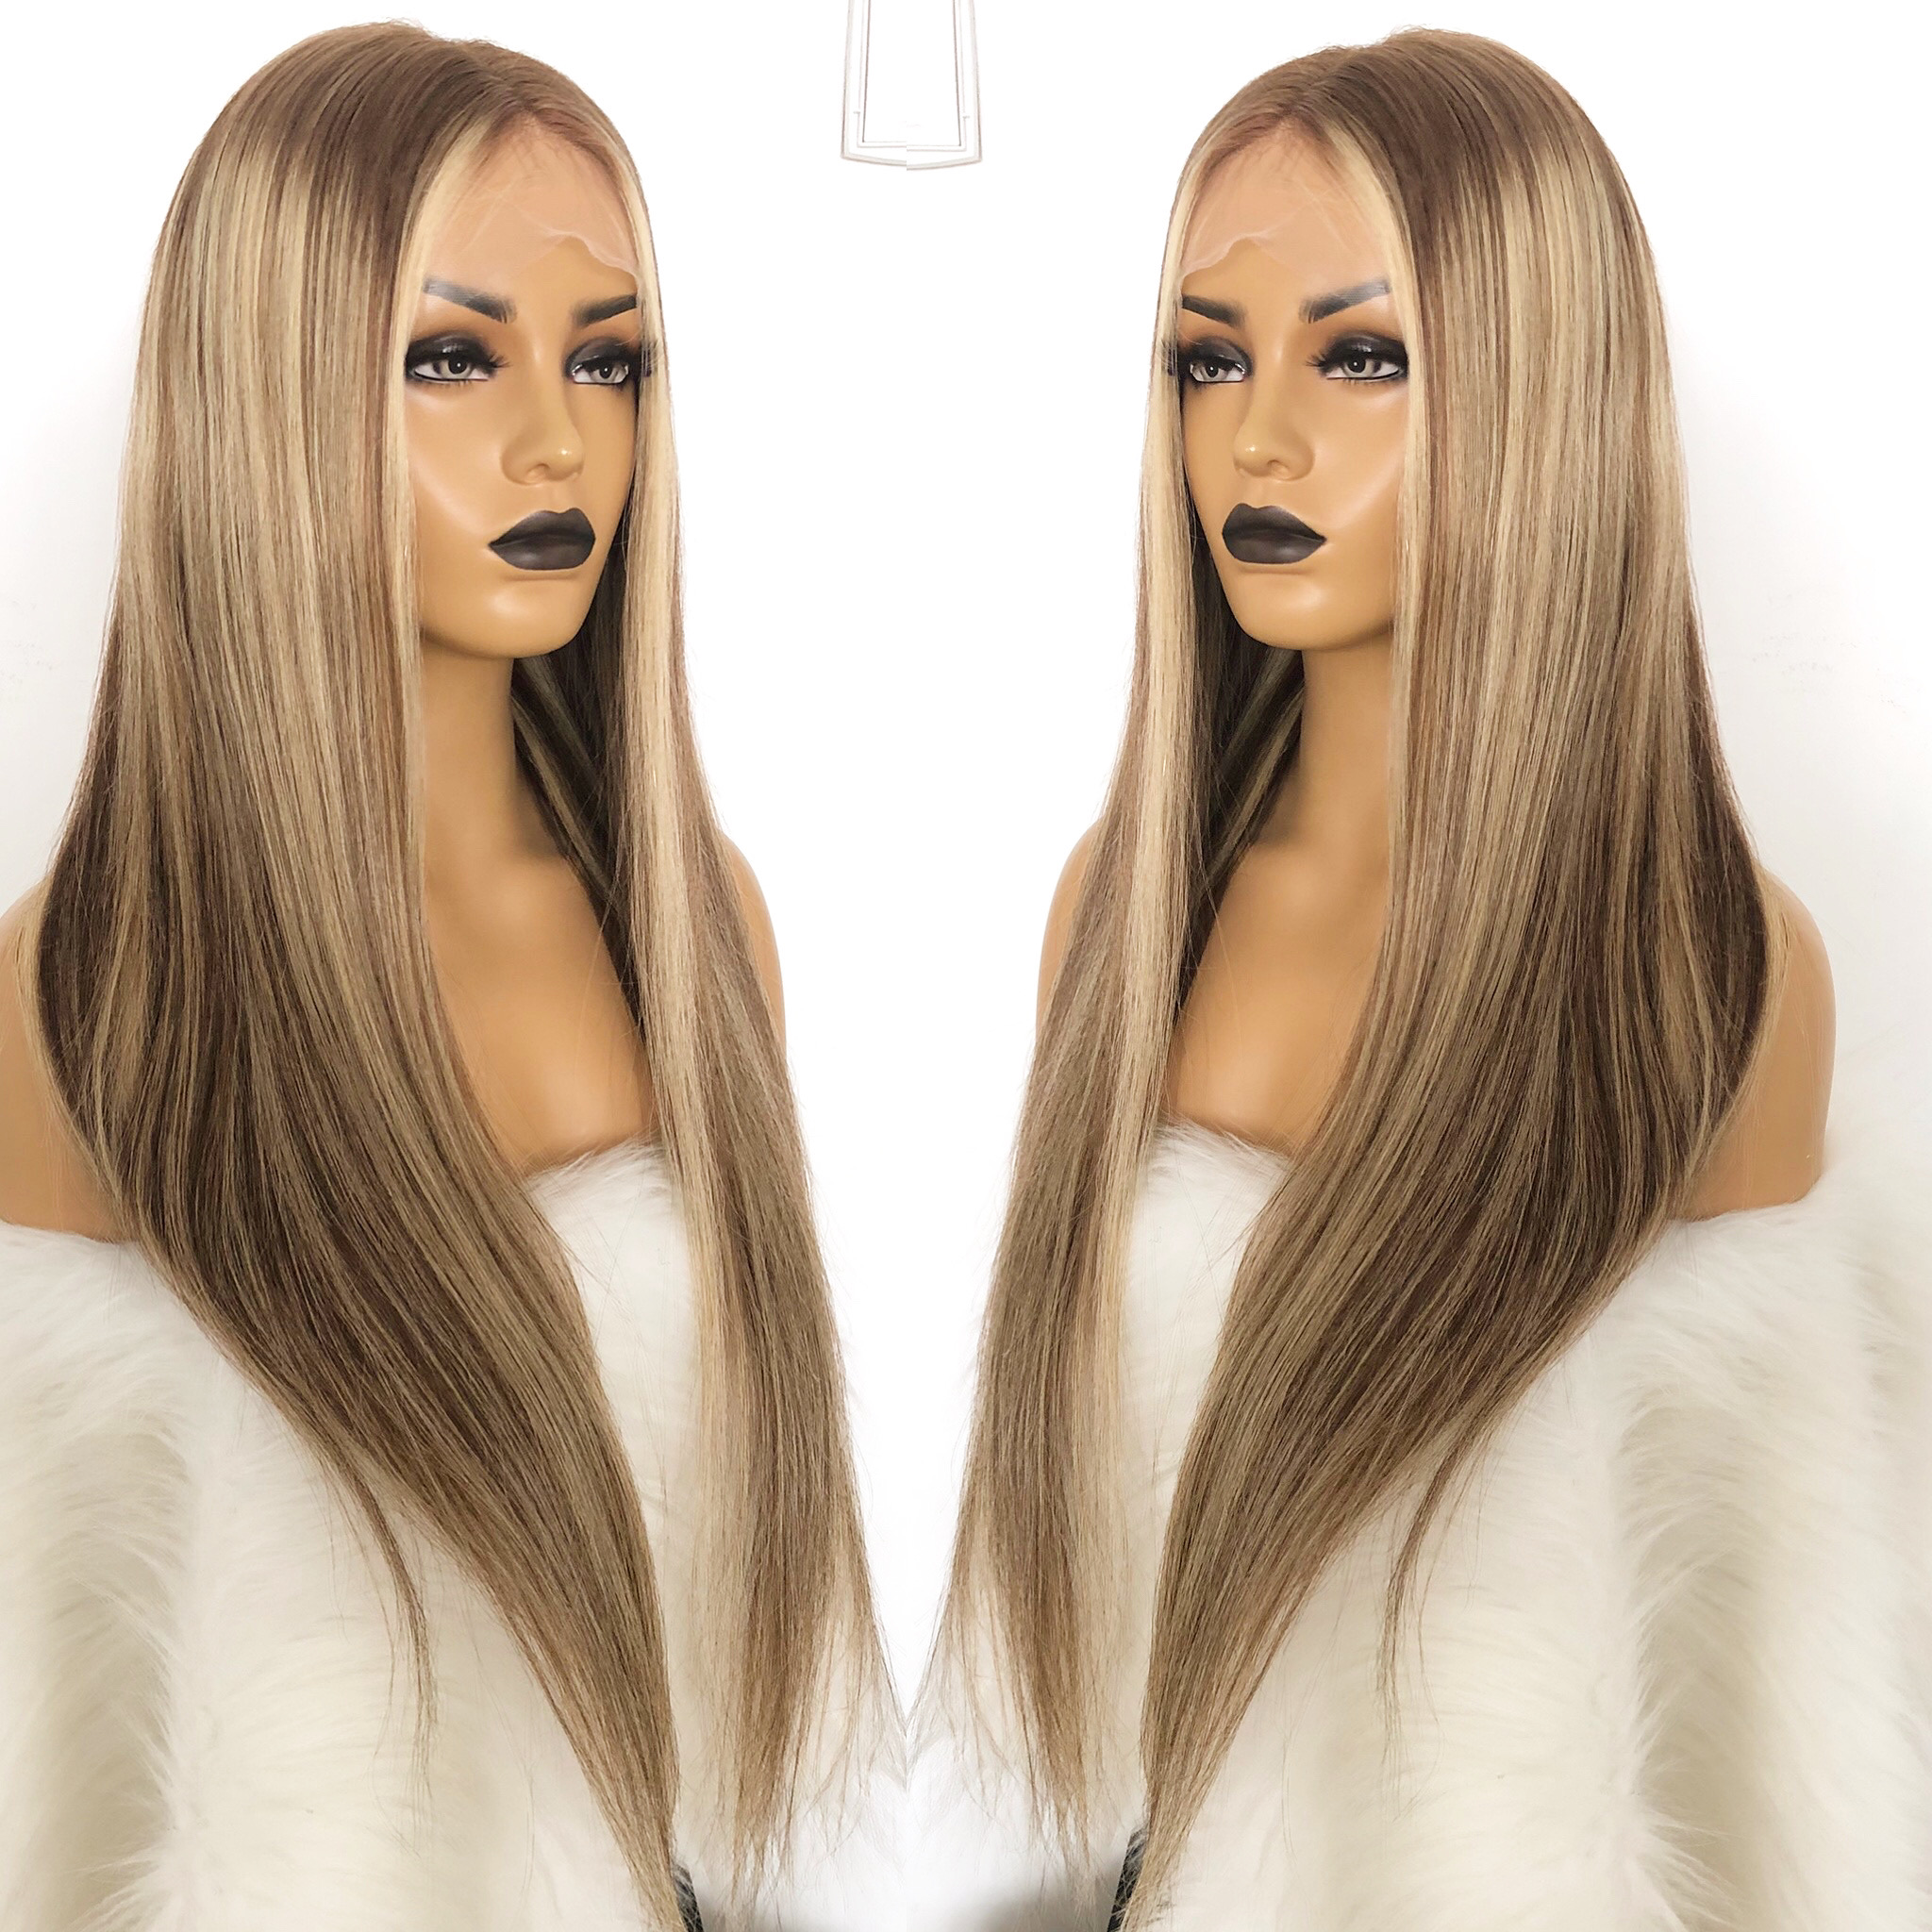 QueenKing hair Full European Remy Human hair Lace Wig 150% Density CAMI Color T7/7/24 Ombre Color Wigs for women